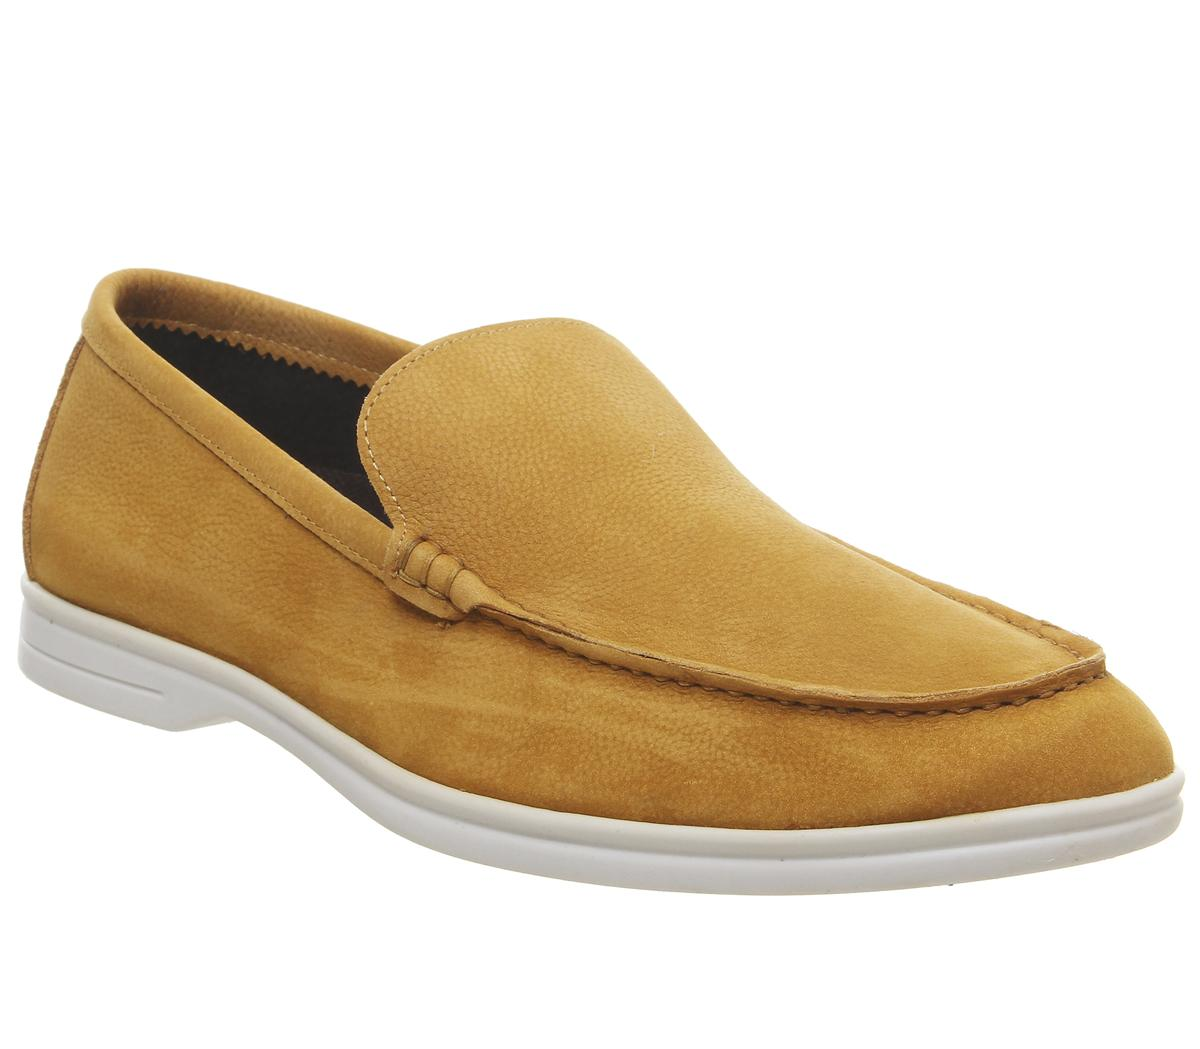 Liger Slip On Loafers